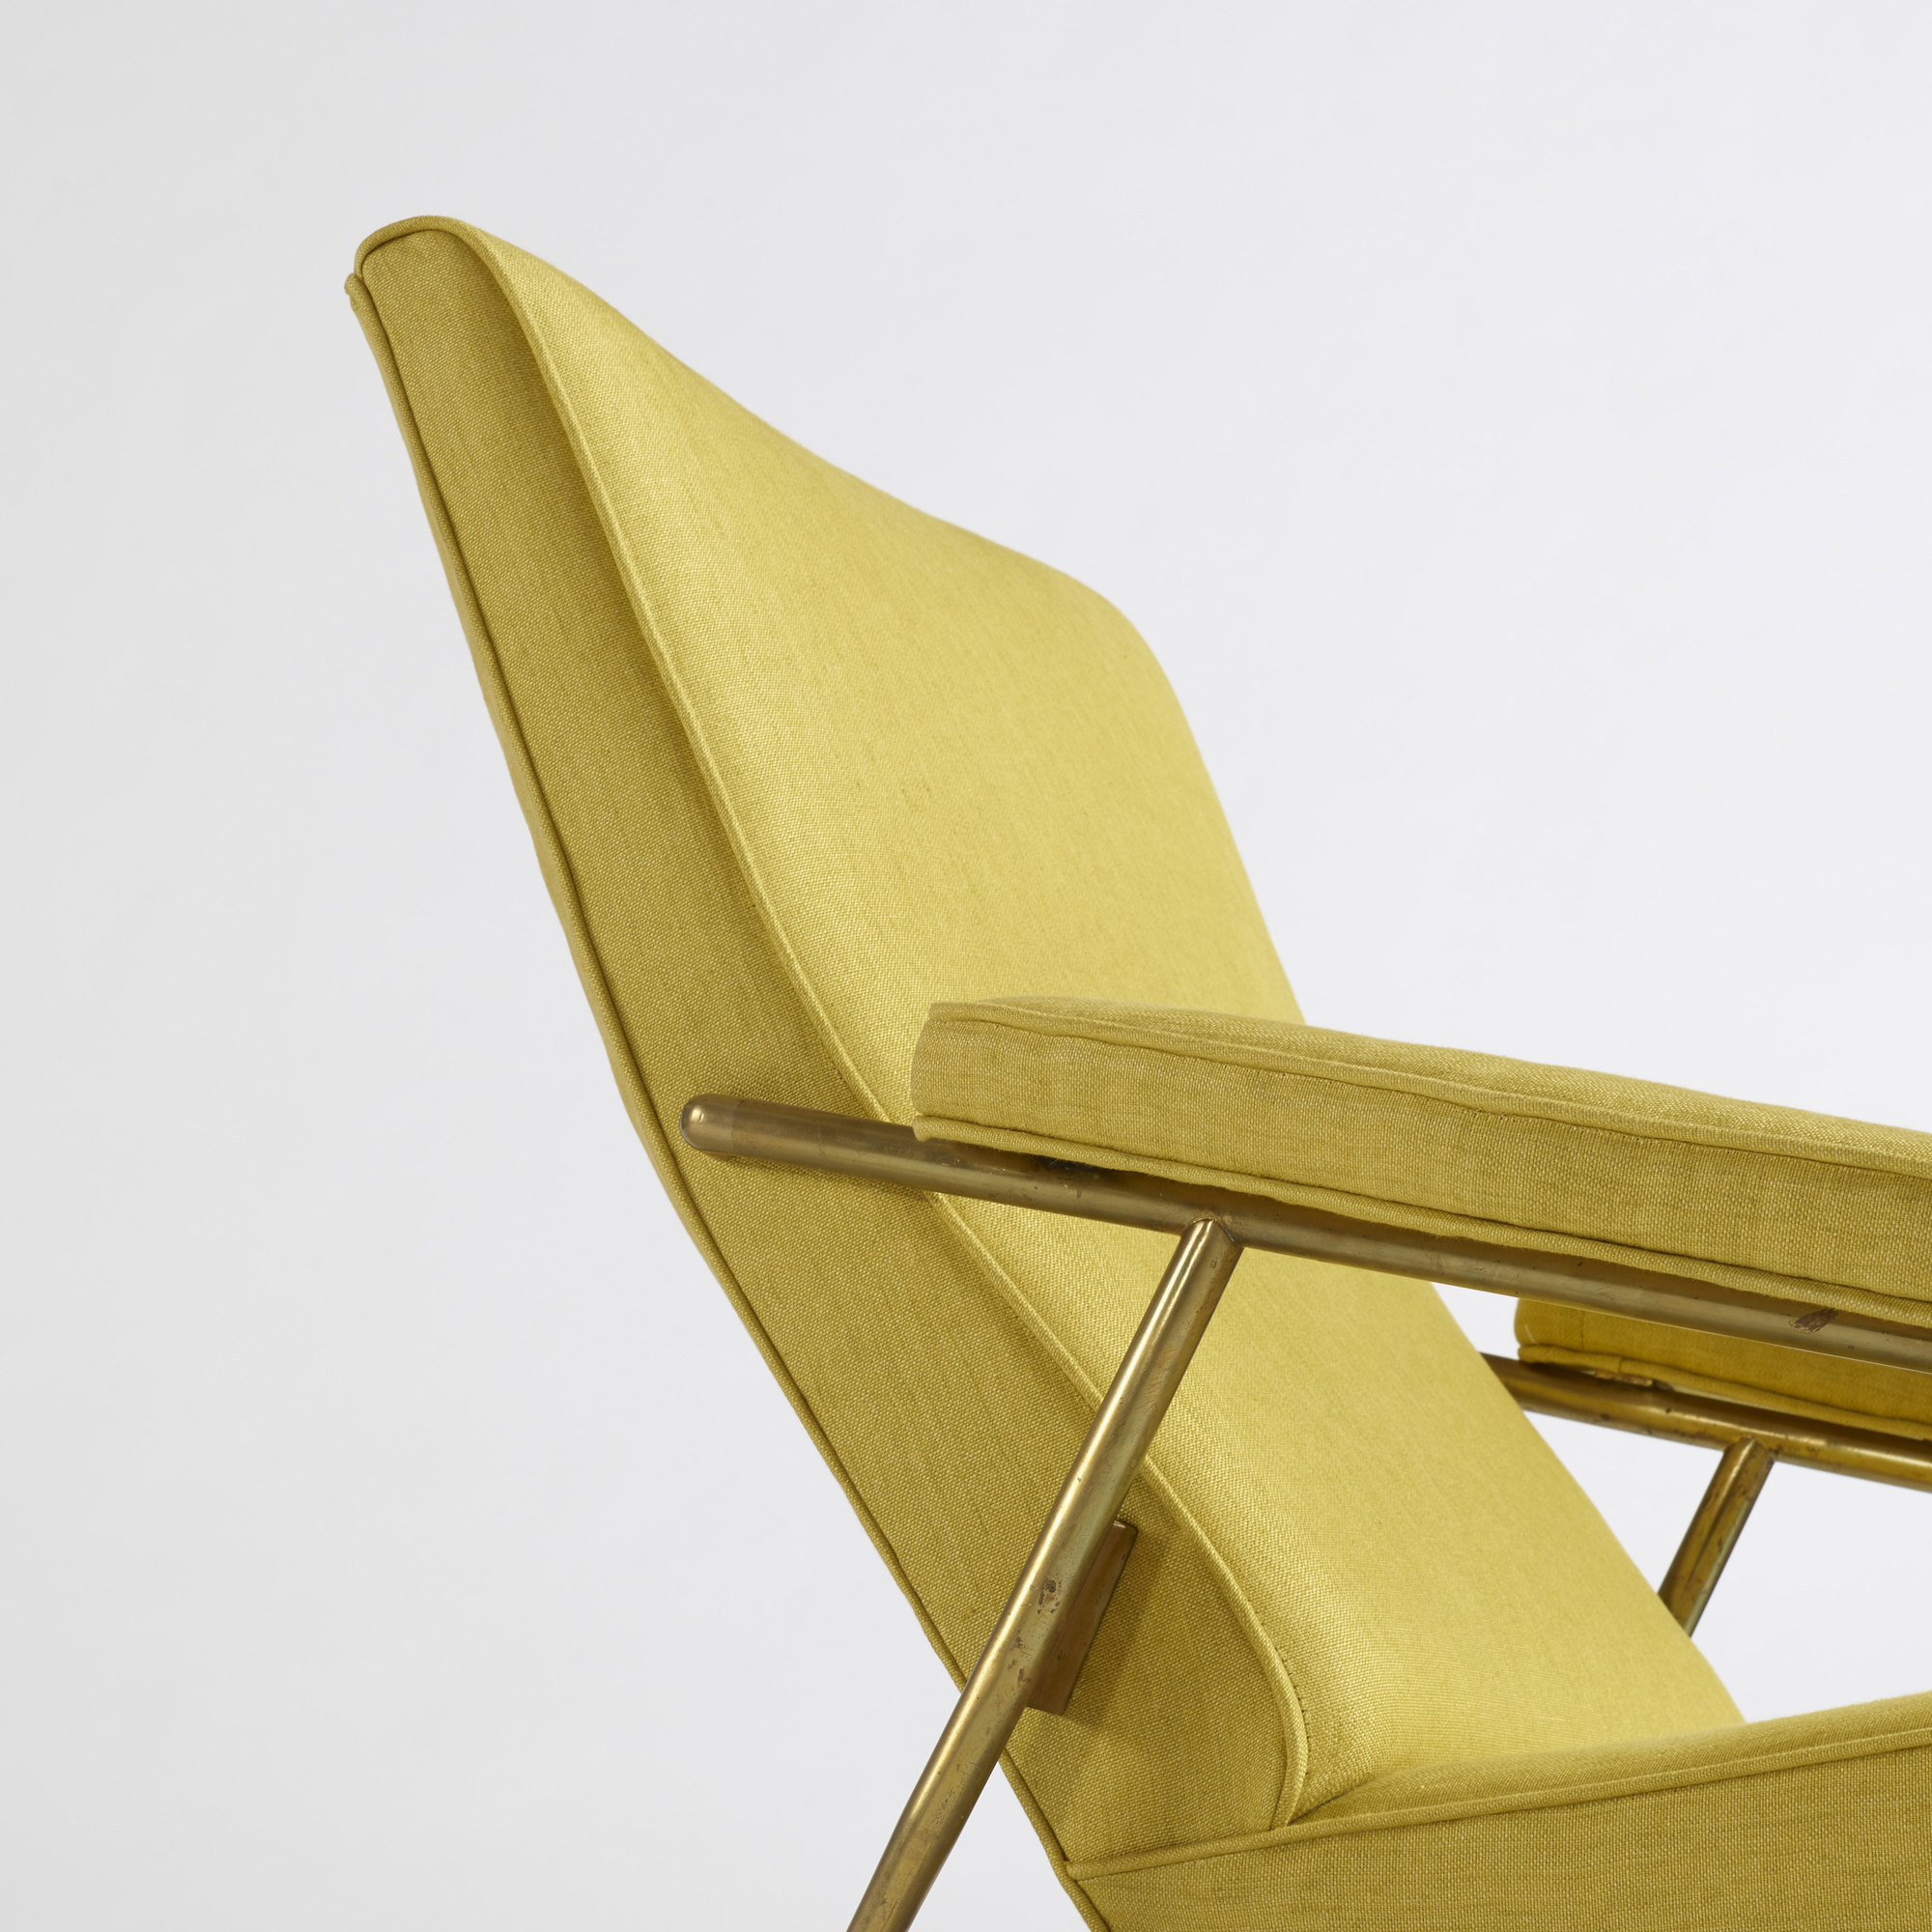 13: Gio Ponti / Distex lounge chair (3 of 5)